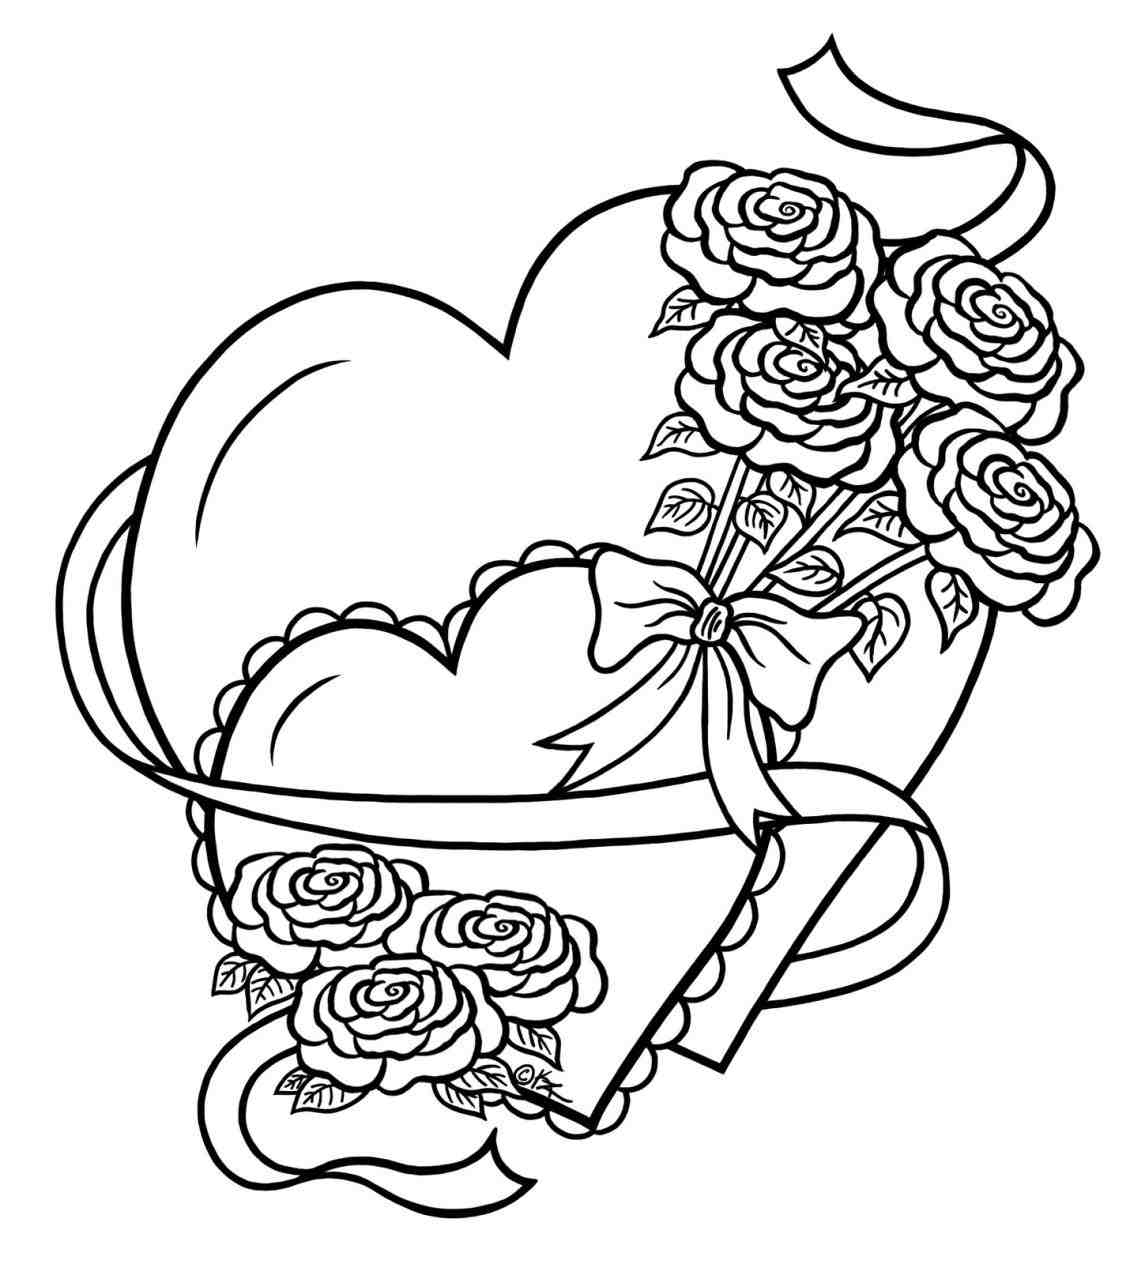 1145x1264 heart drawings in pencil with roses